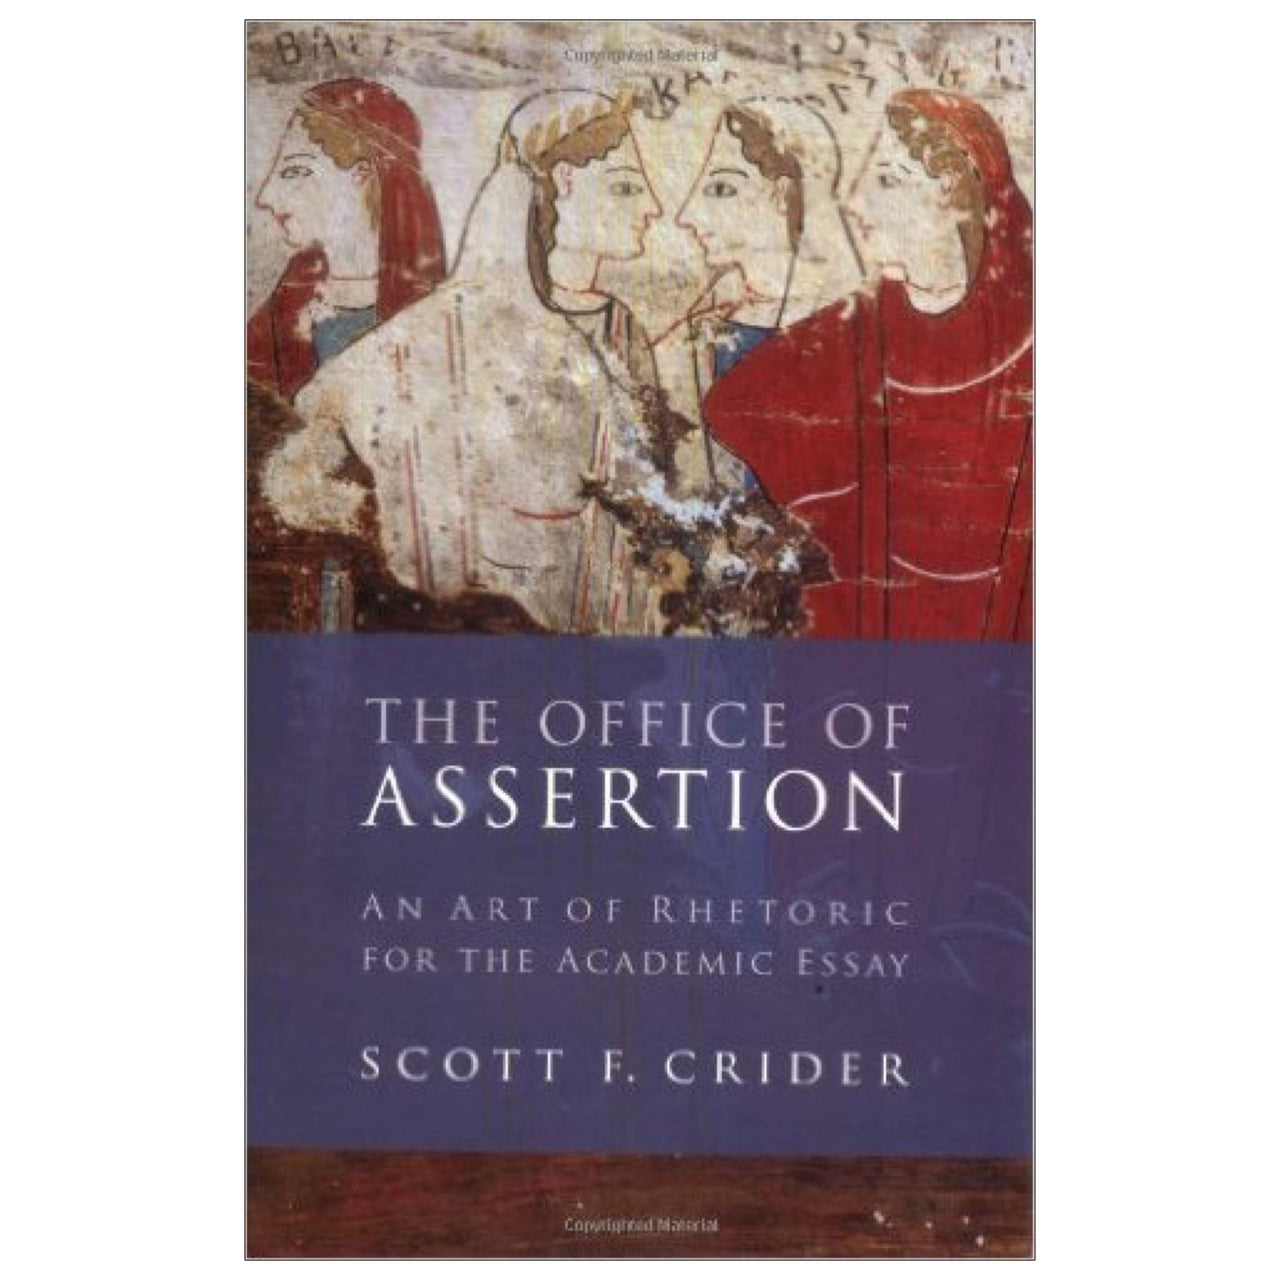 The Office Of Assertion: An Art Of Rhetoric For Academic Essay